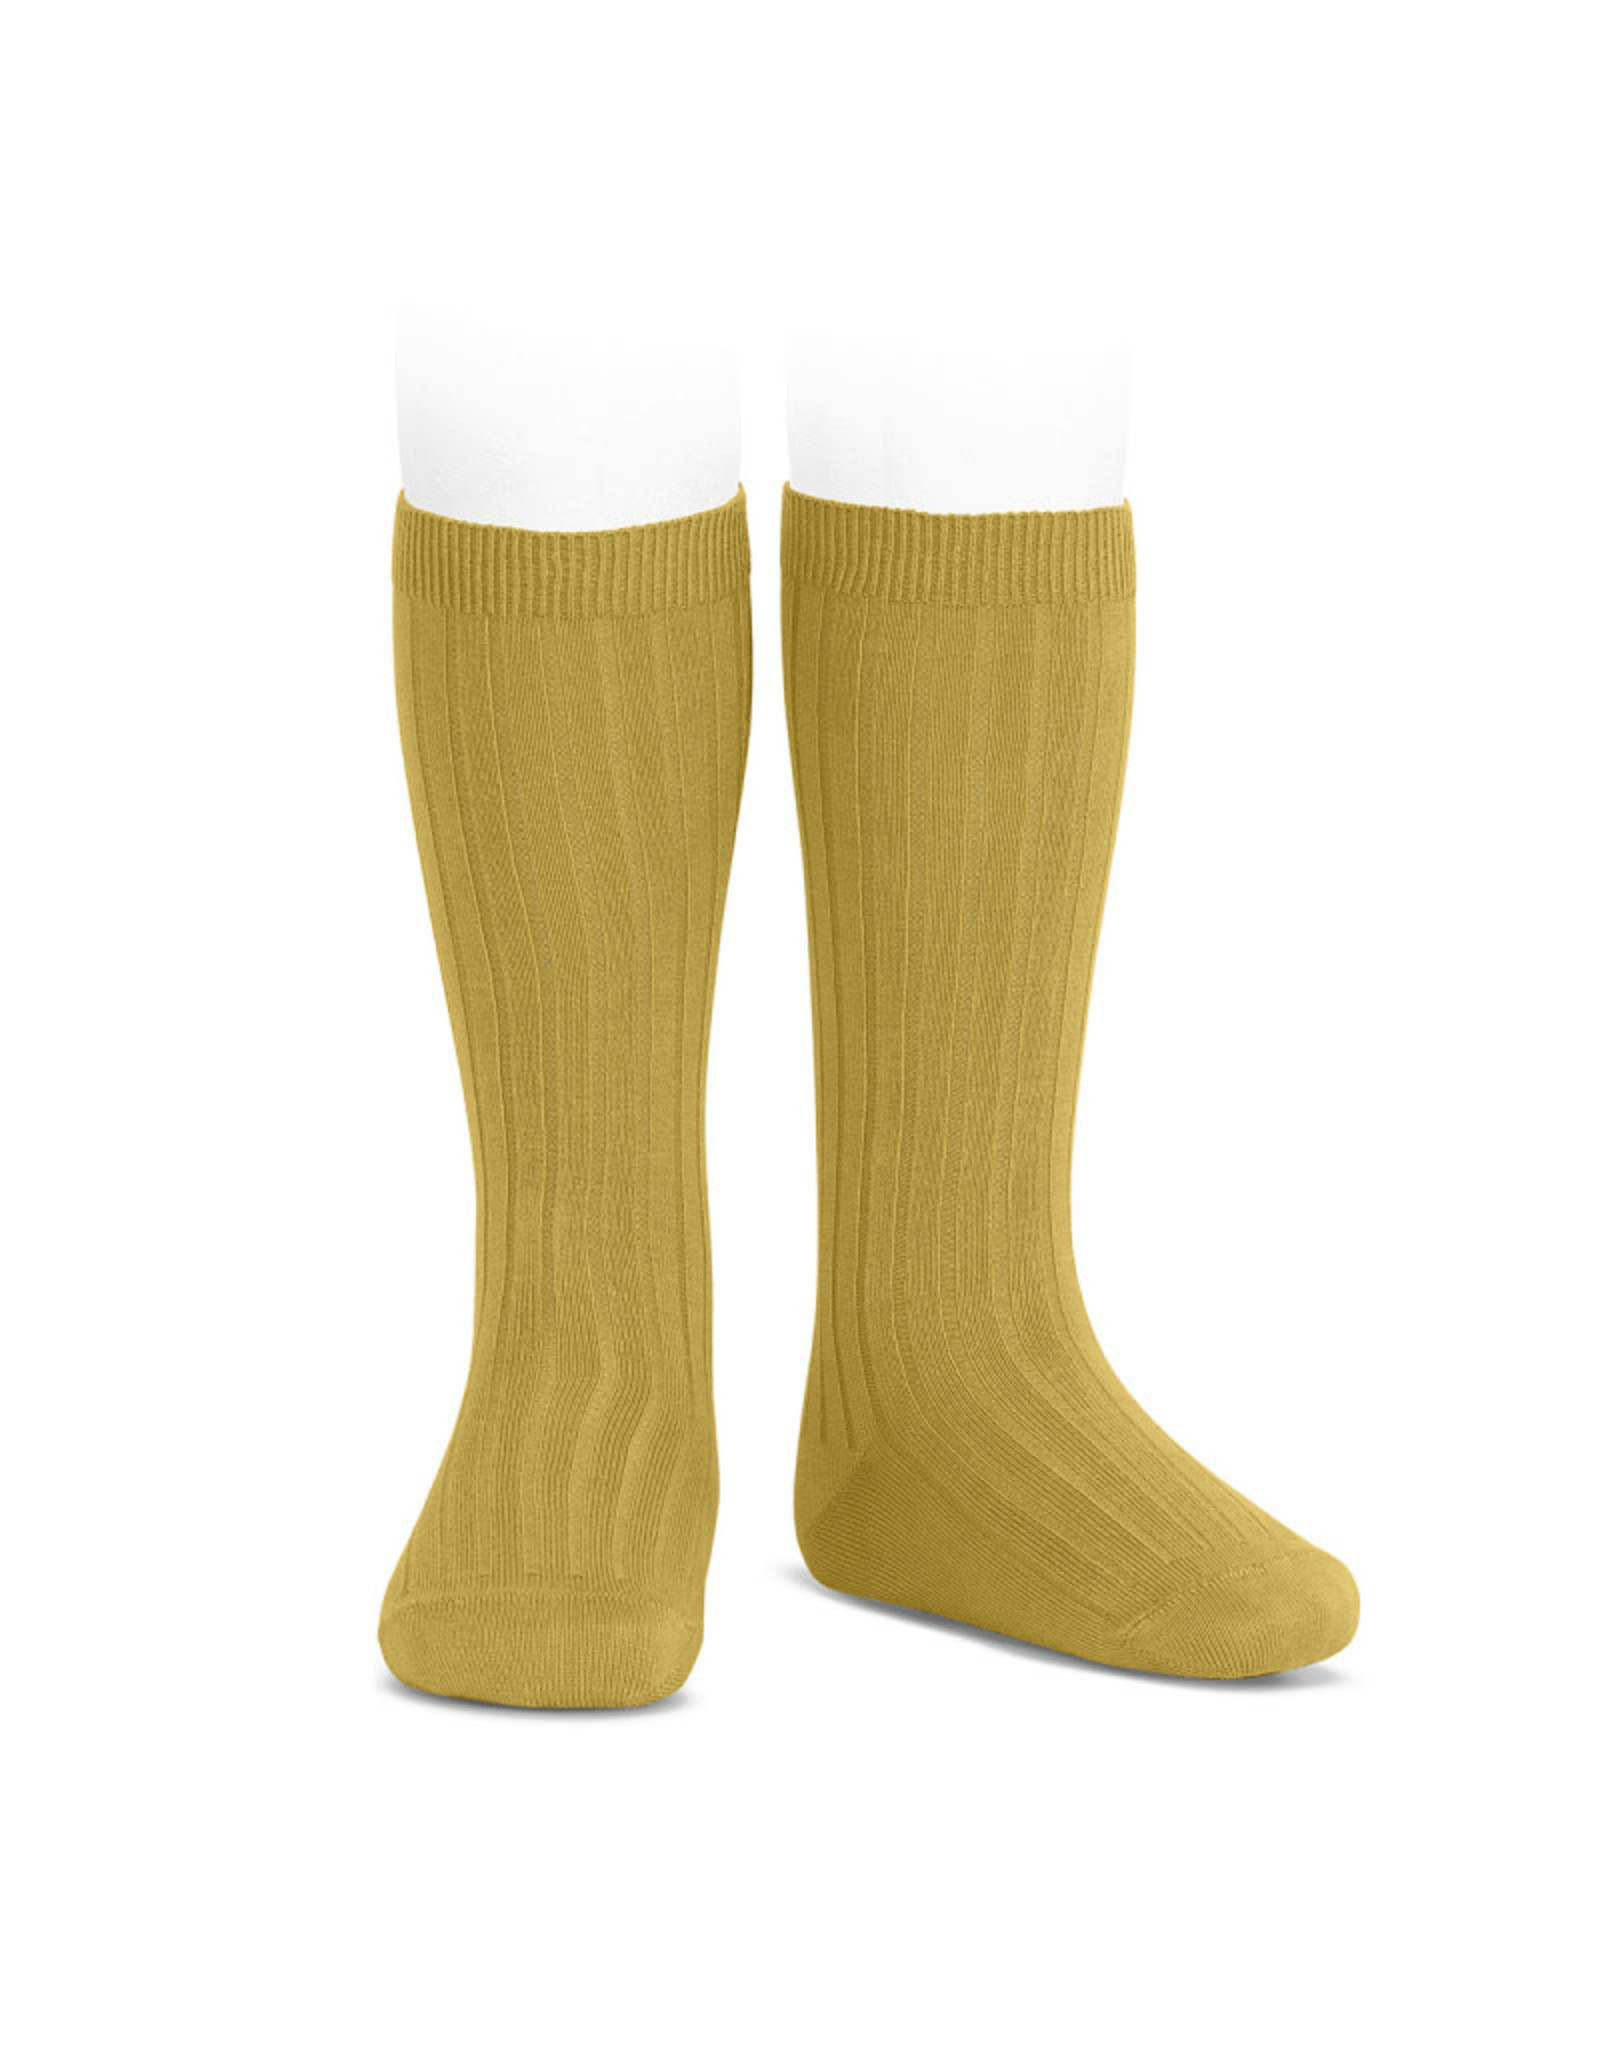 CONDOR Mustard Ribbed Knee Socks